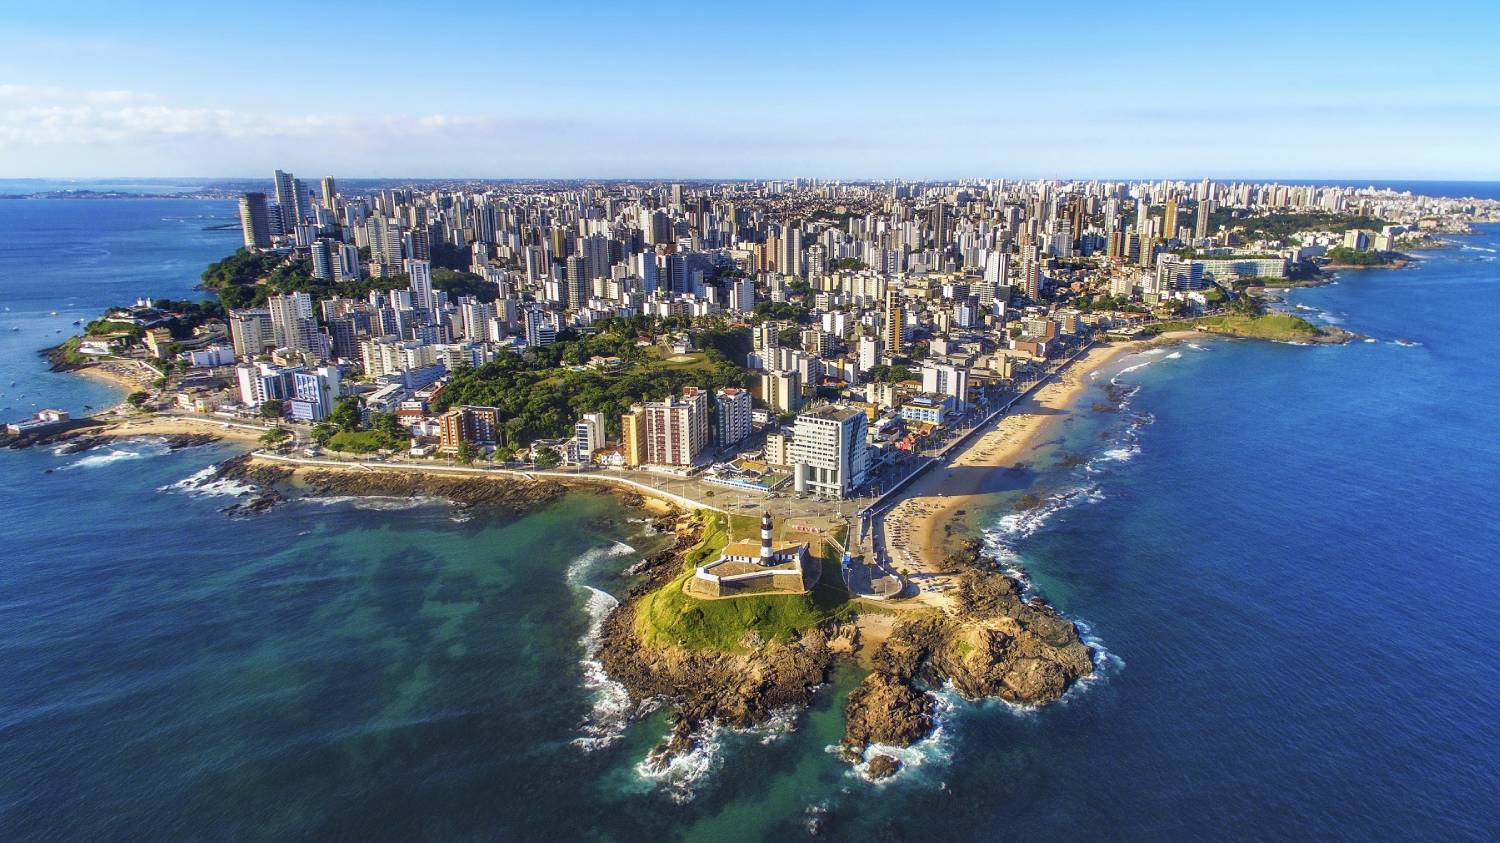 Salvador - The Best Places To Visit In Brazil